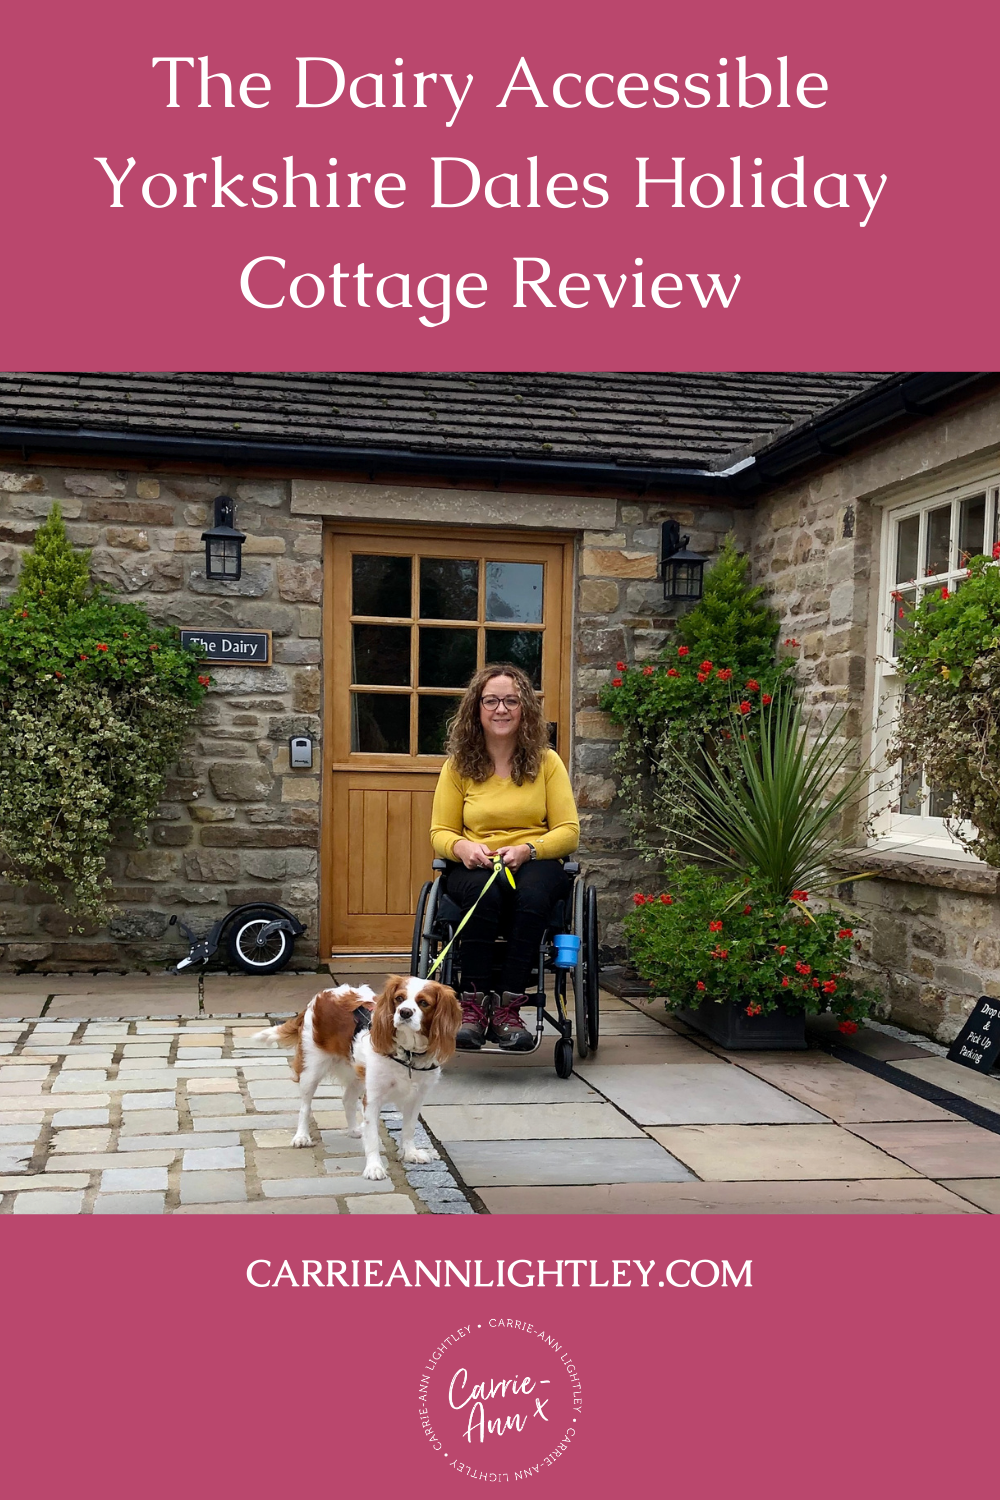 Top of image reads - The Dairy | Accessible Yorkshire Dales Holiday Cottage Review. Middle of image shows Carrie-Ann sitting in front of the cottage in her wheelchair. Bottom of image has this blog's website address and logo